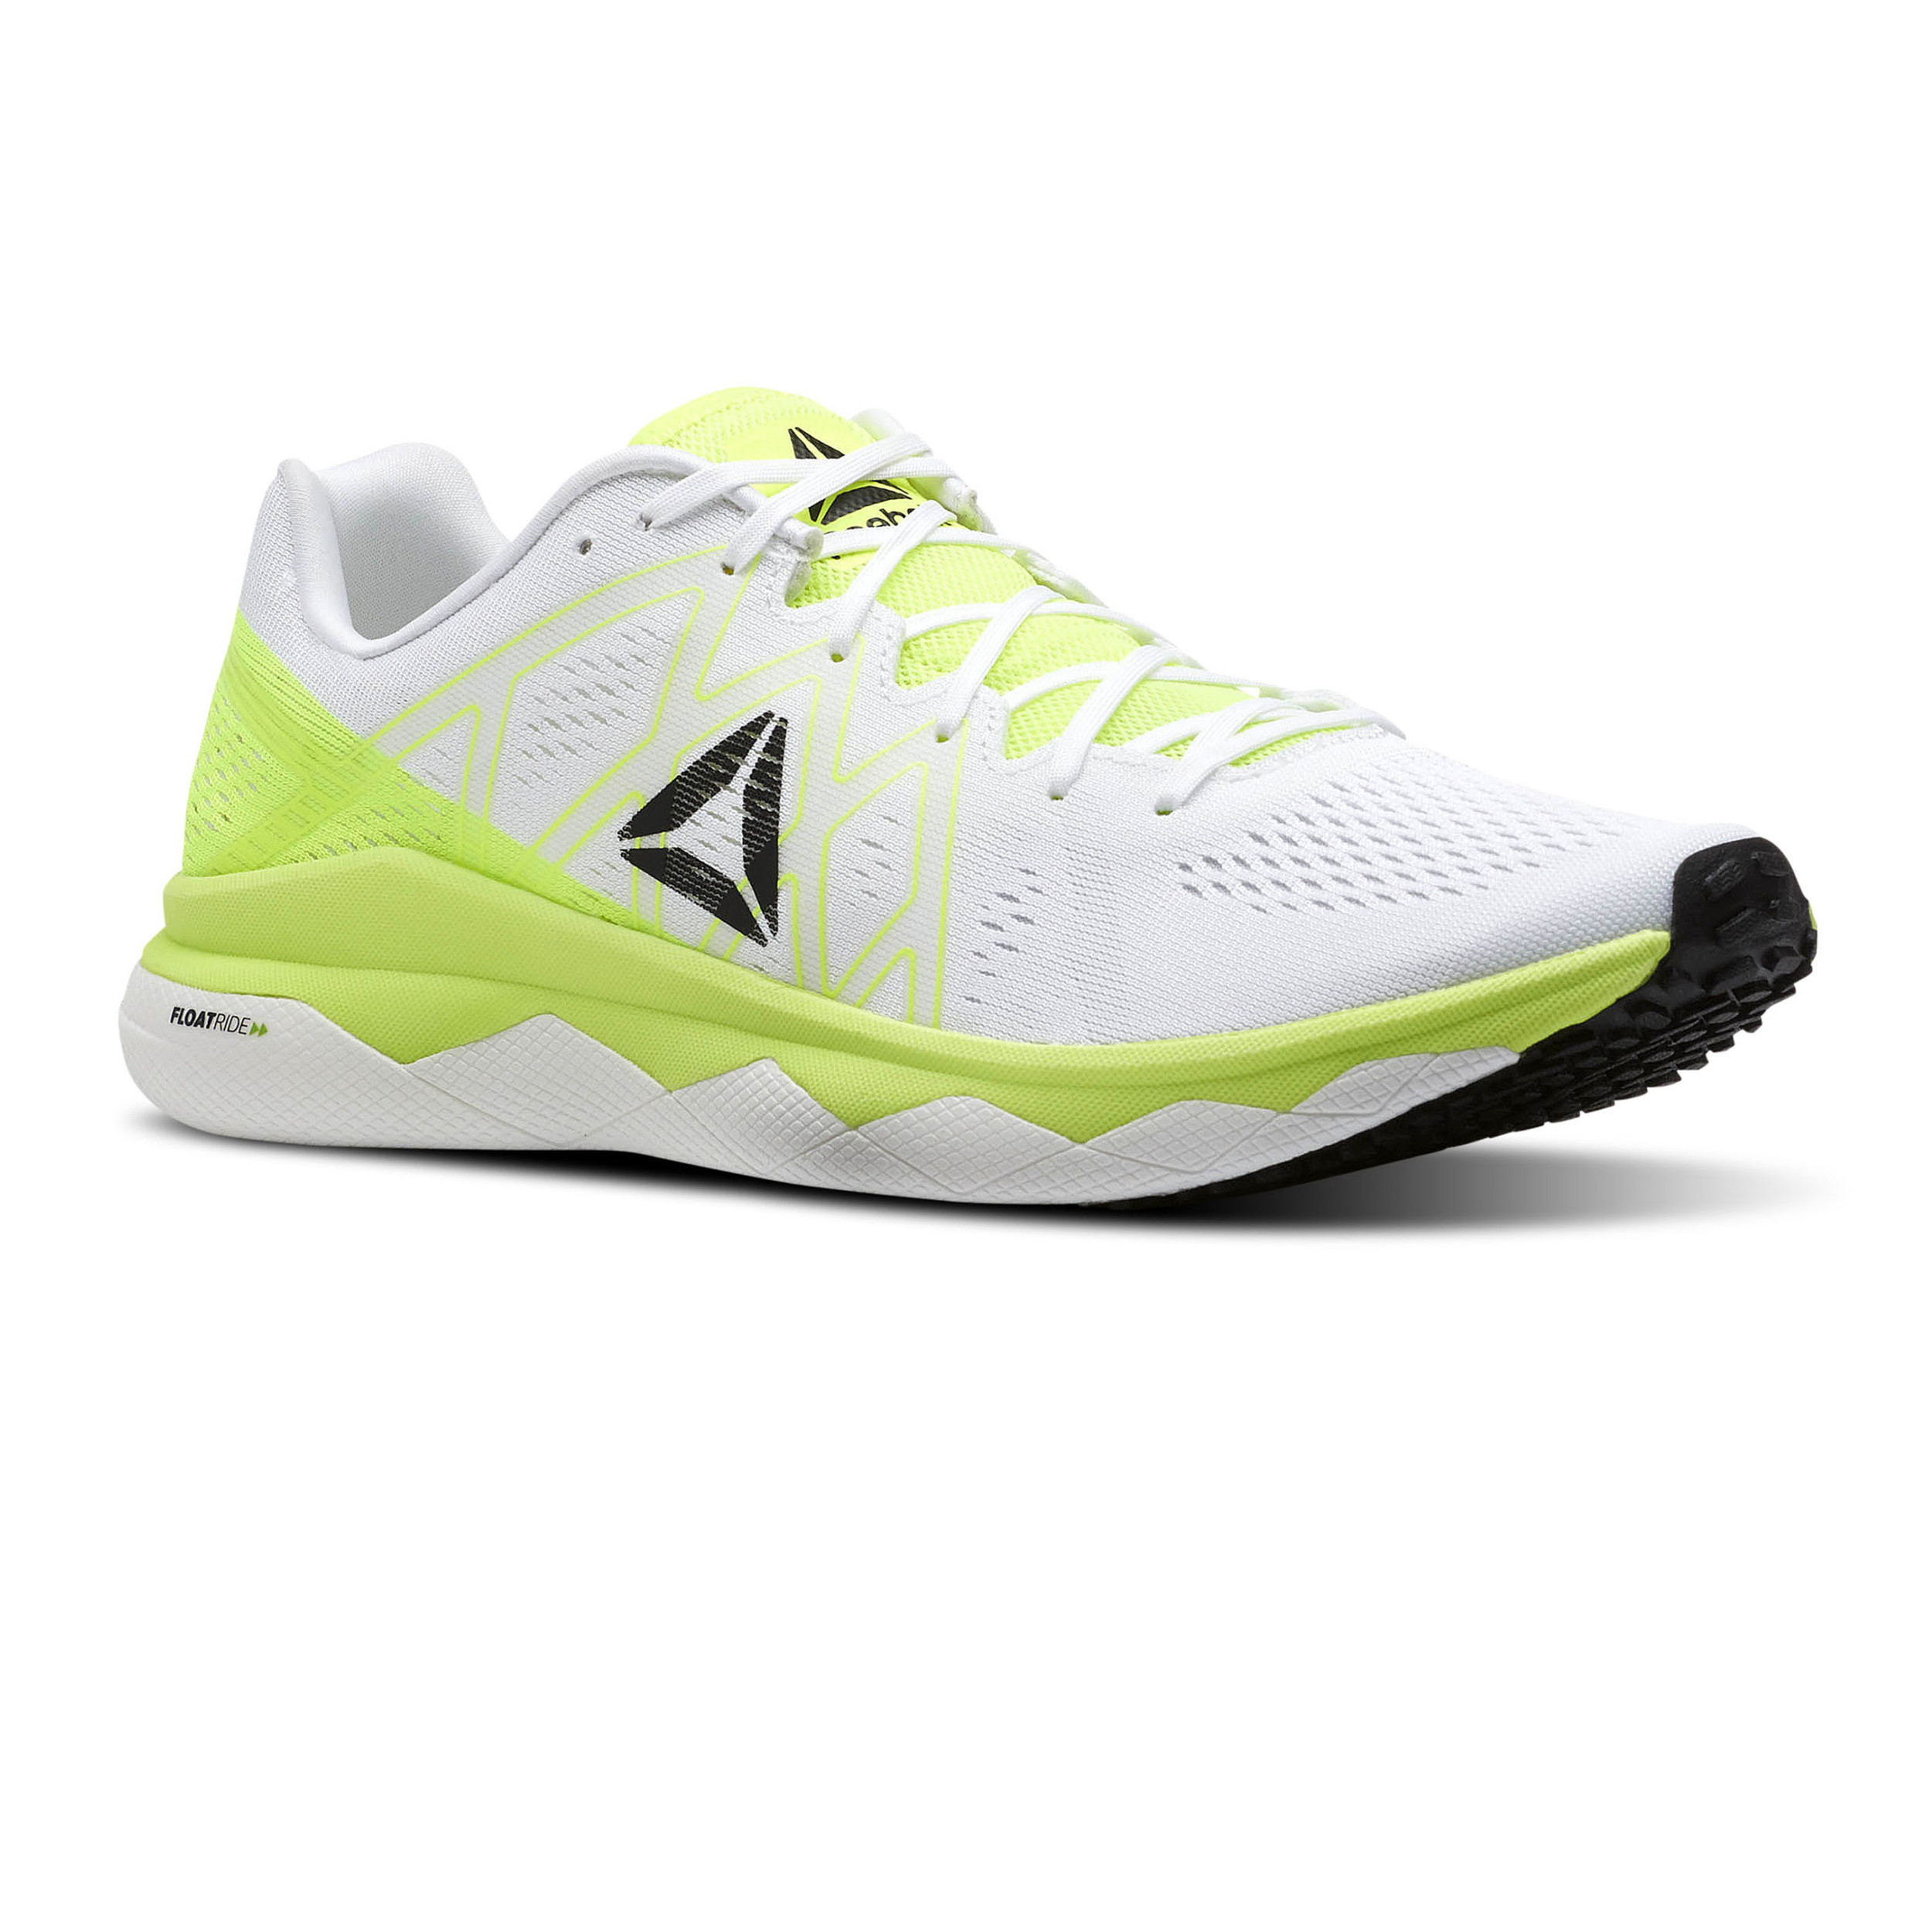 68dcc5d4ecc Details about Reebok Mens Floatride Run Fast Running Shoes Trainers Sneakers  White Yellow